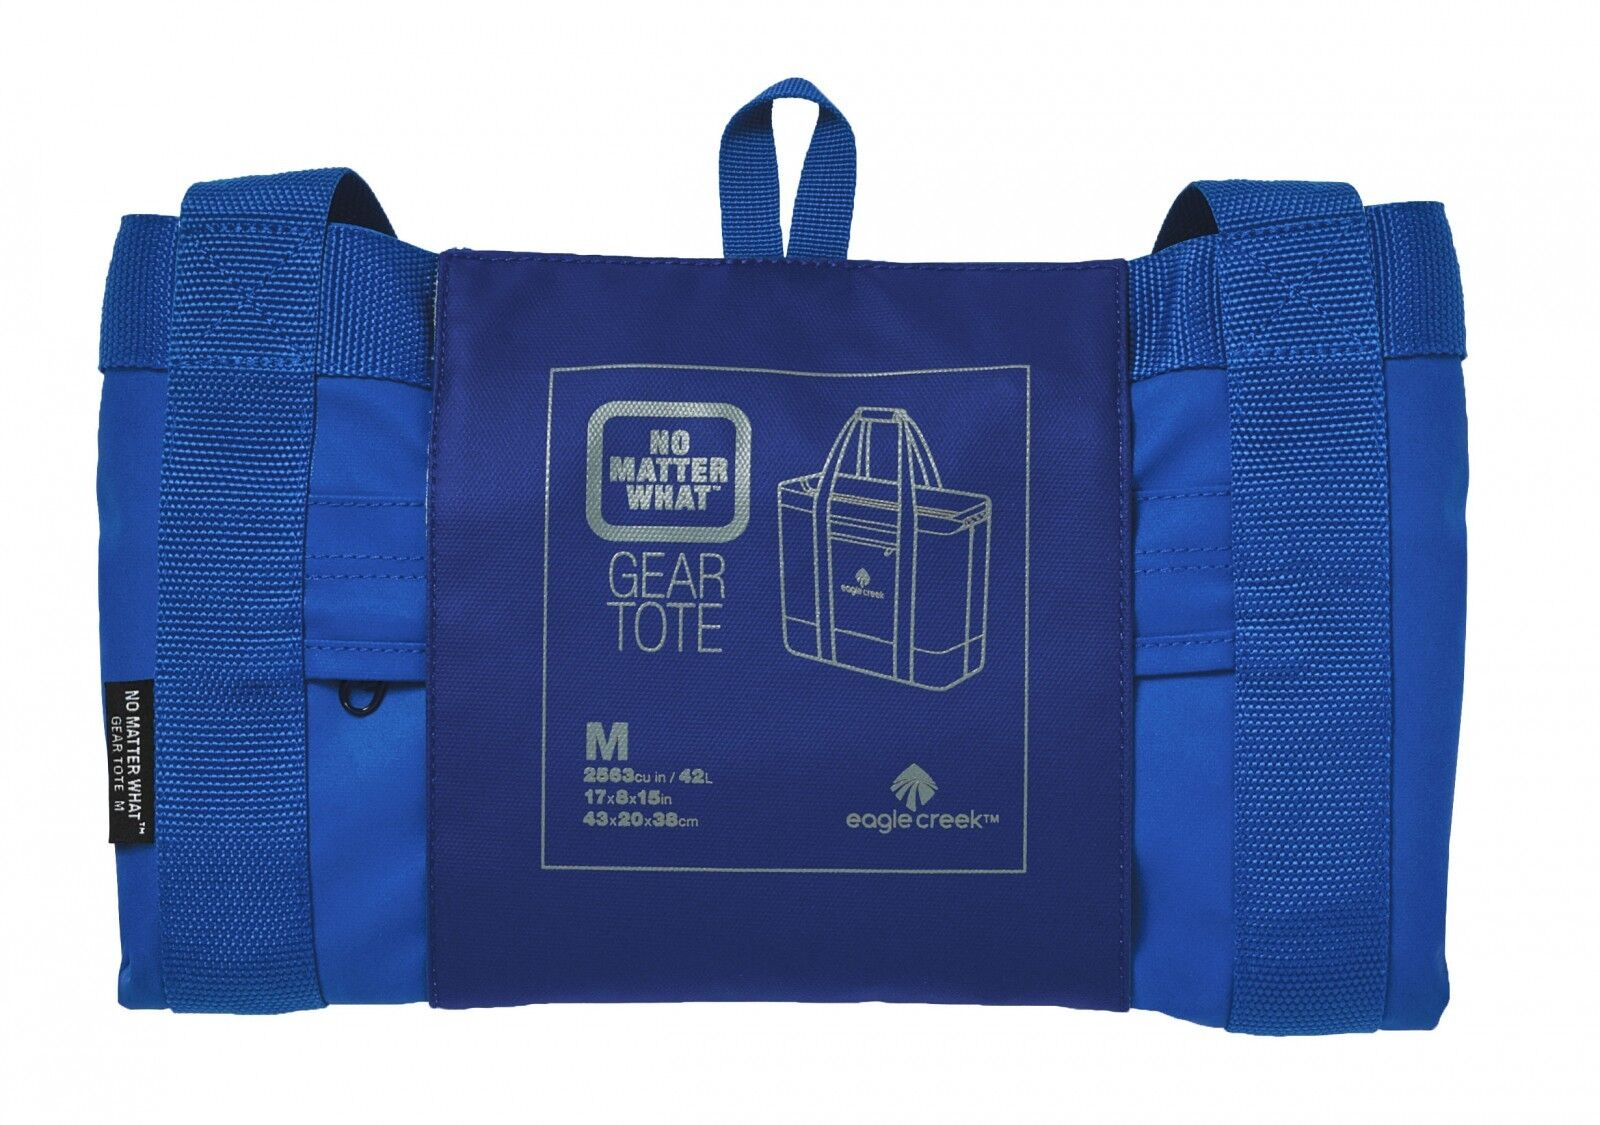 Eagle creek Sac No Shopper No Sac Matter What Gear Tote M Cobalt aa72f7